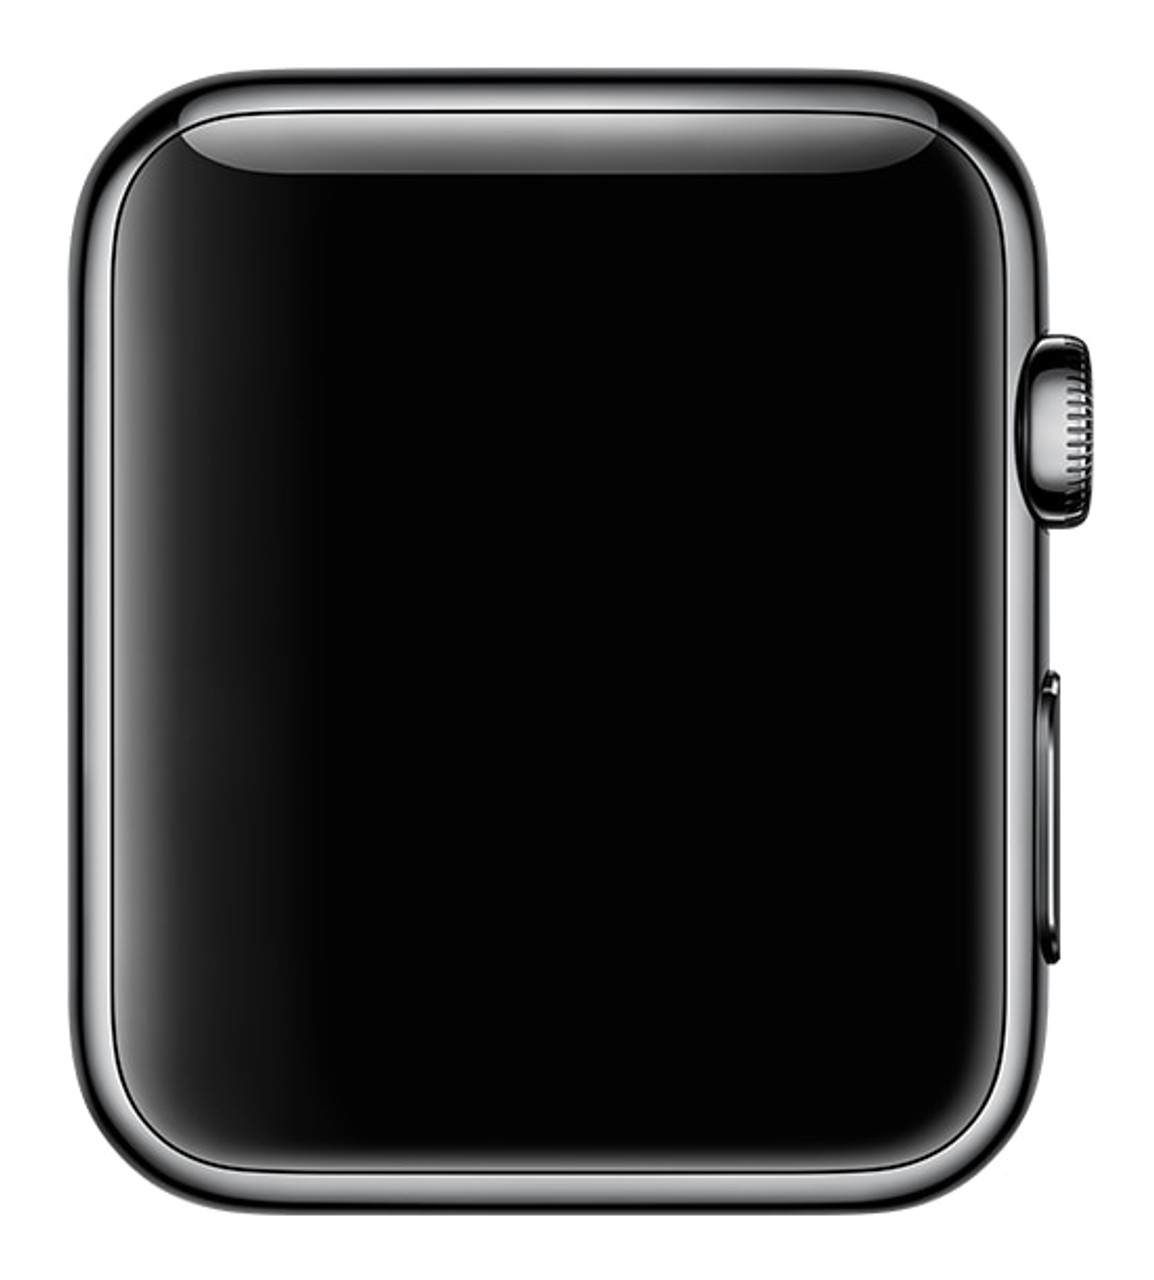 newest 9f4d6 11e05 Apple Watch (Series 3) GPS + Cellular - 42mm Space Black Stainless Steel -  Excellent